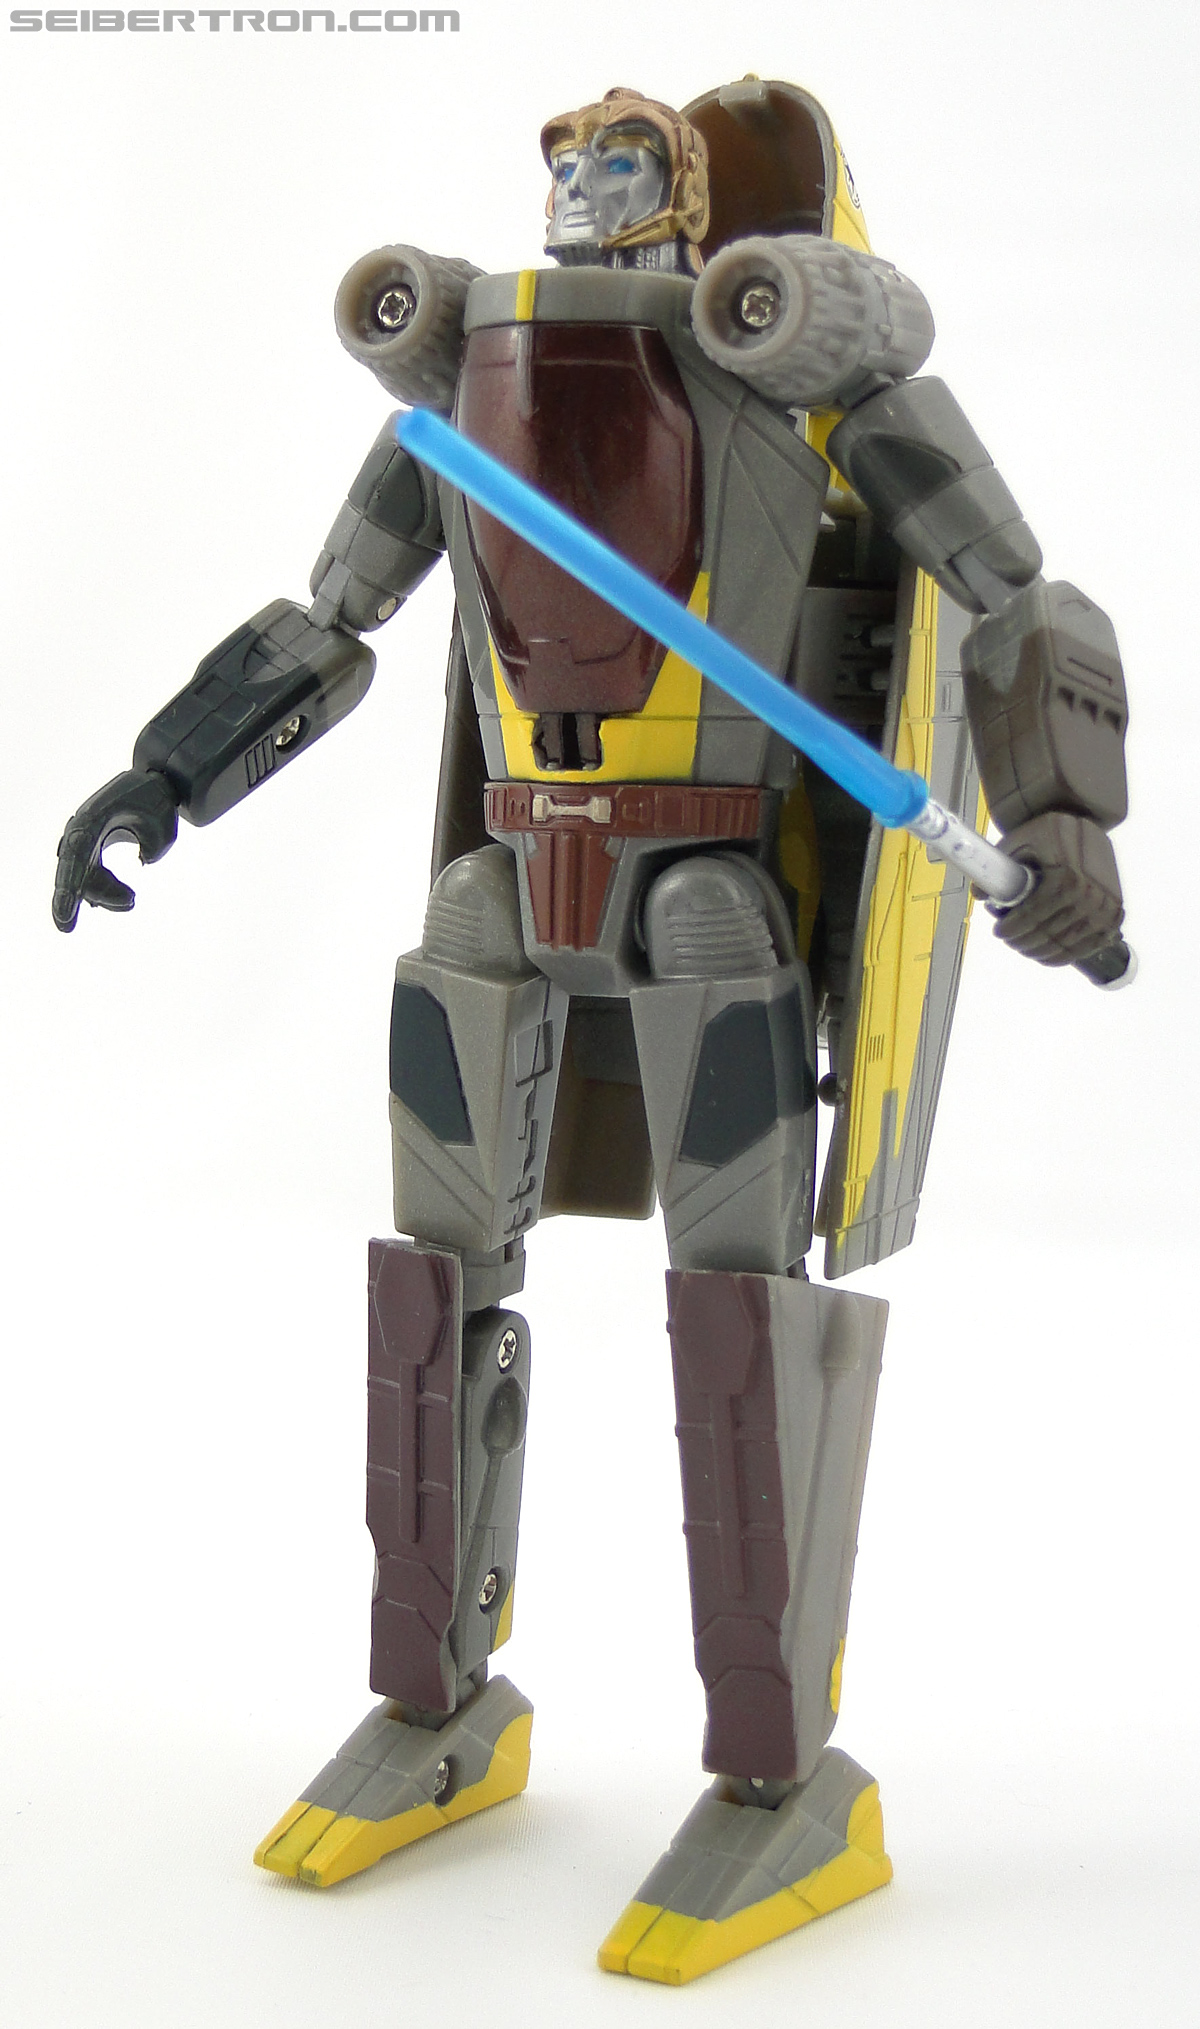 Star Wars Transformers Anakin Skywalker (Jedi Starfighter) (Image #56 of 108)